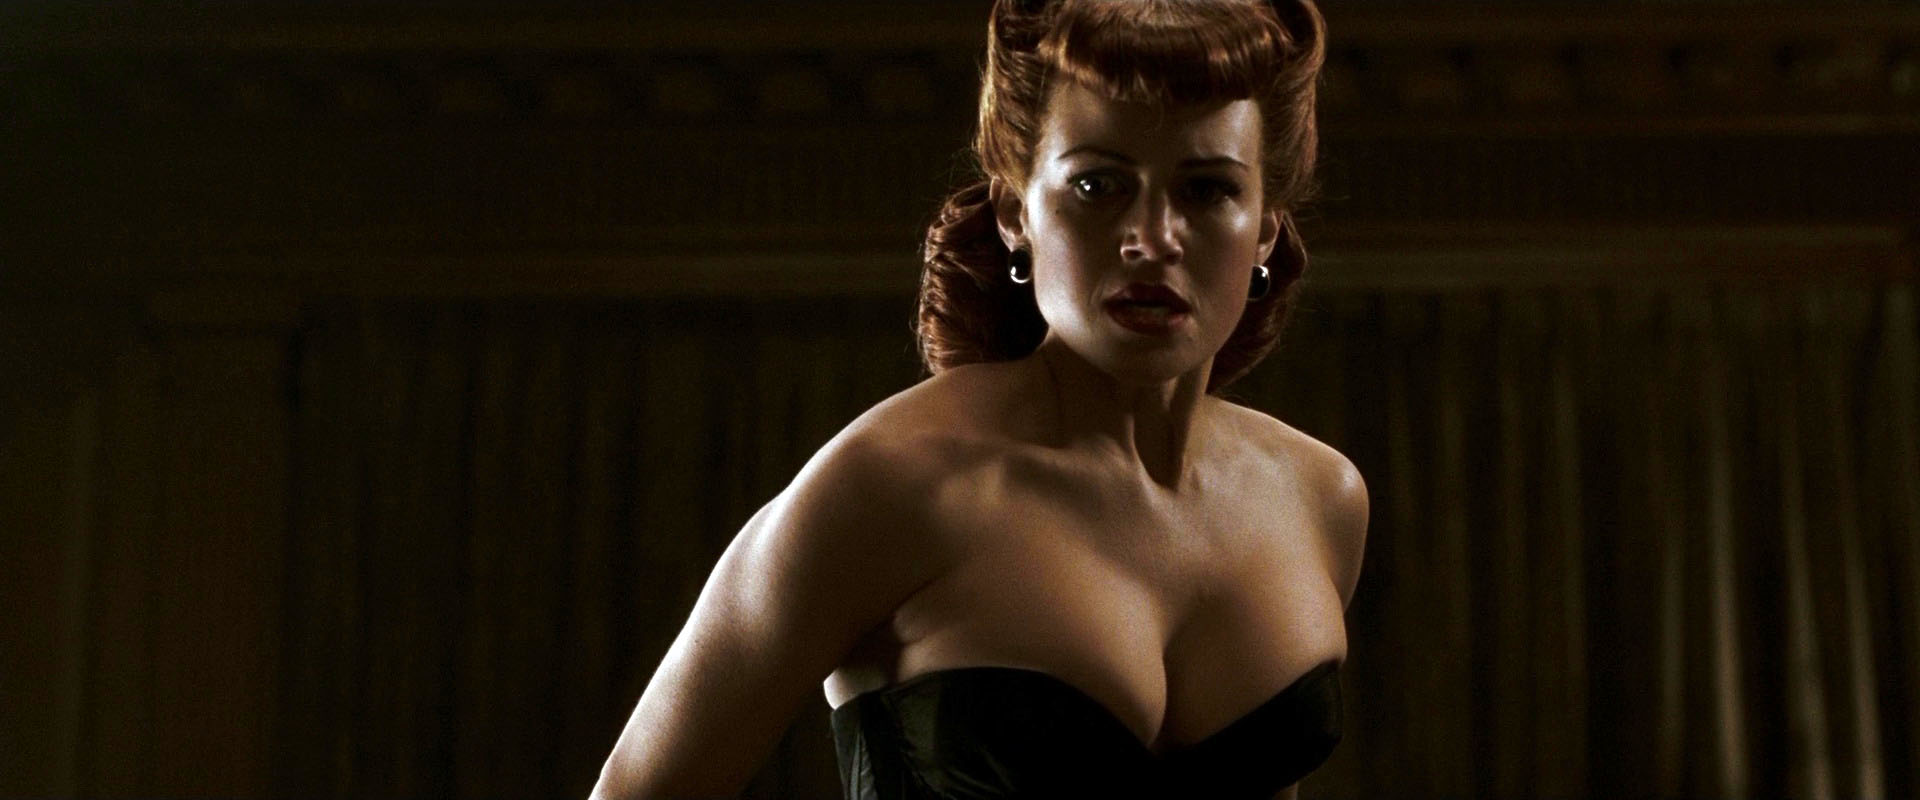 Nude Video Celebs  Carla Gugino Sexy - Watchmen 2009-3019